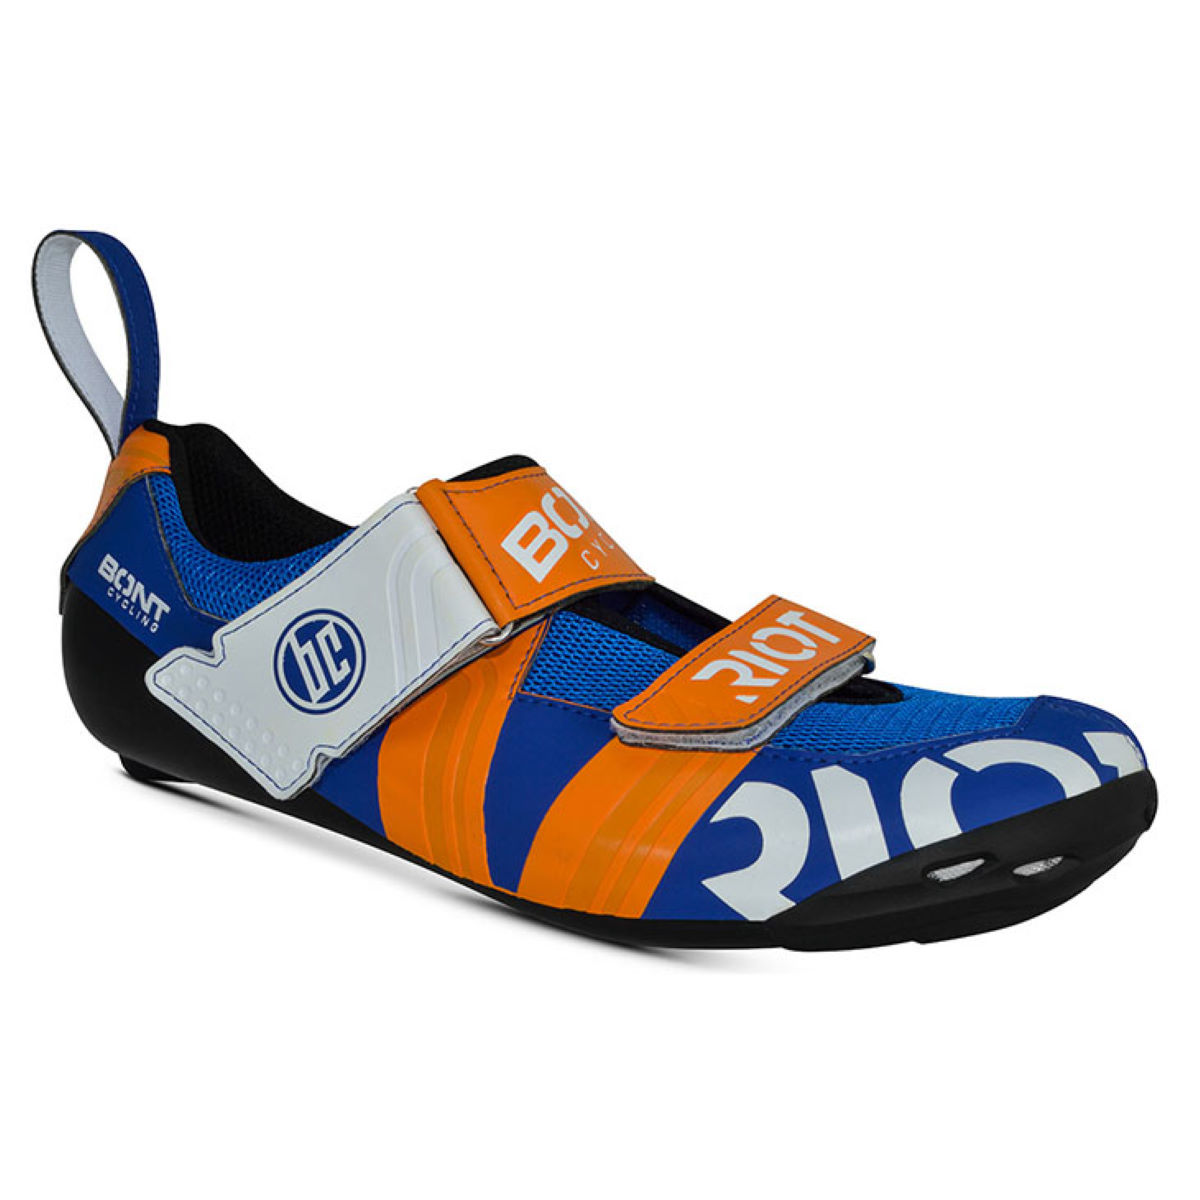 Chaussures de triathlon Bont Riot TR+ - EU 43 Midnight/Mega Crimso